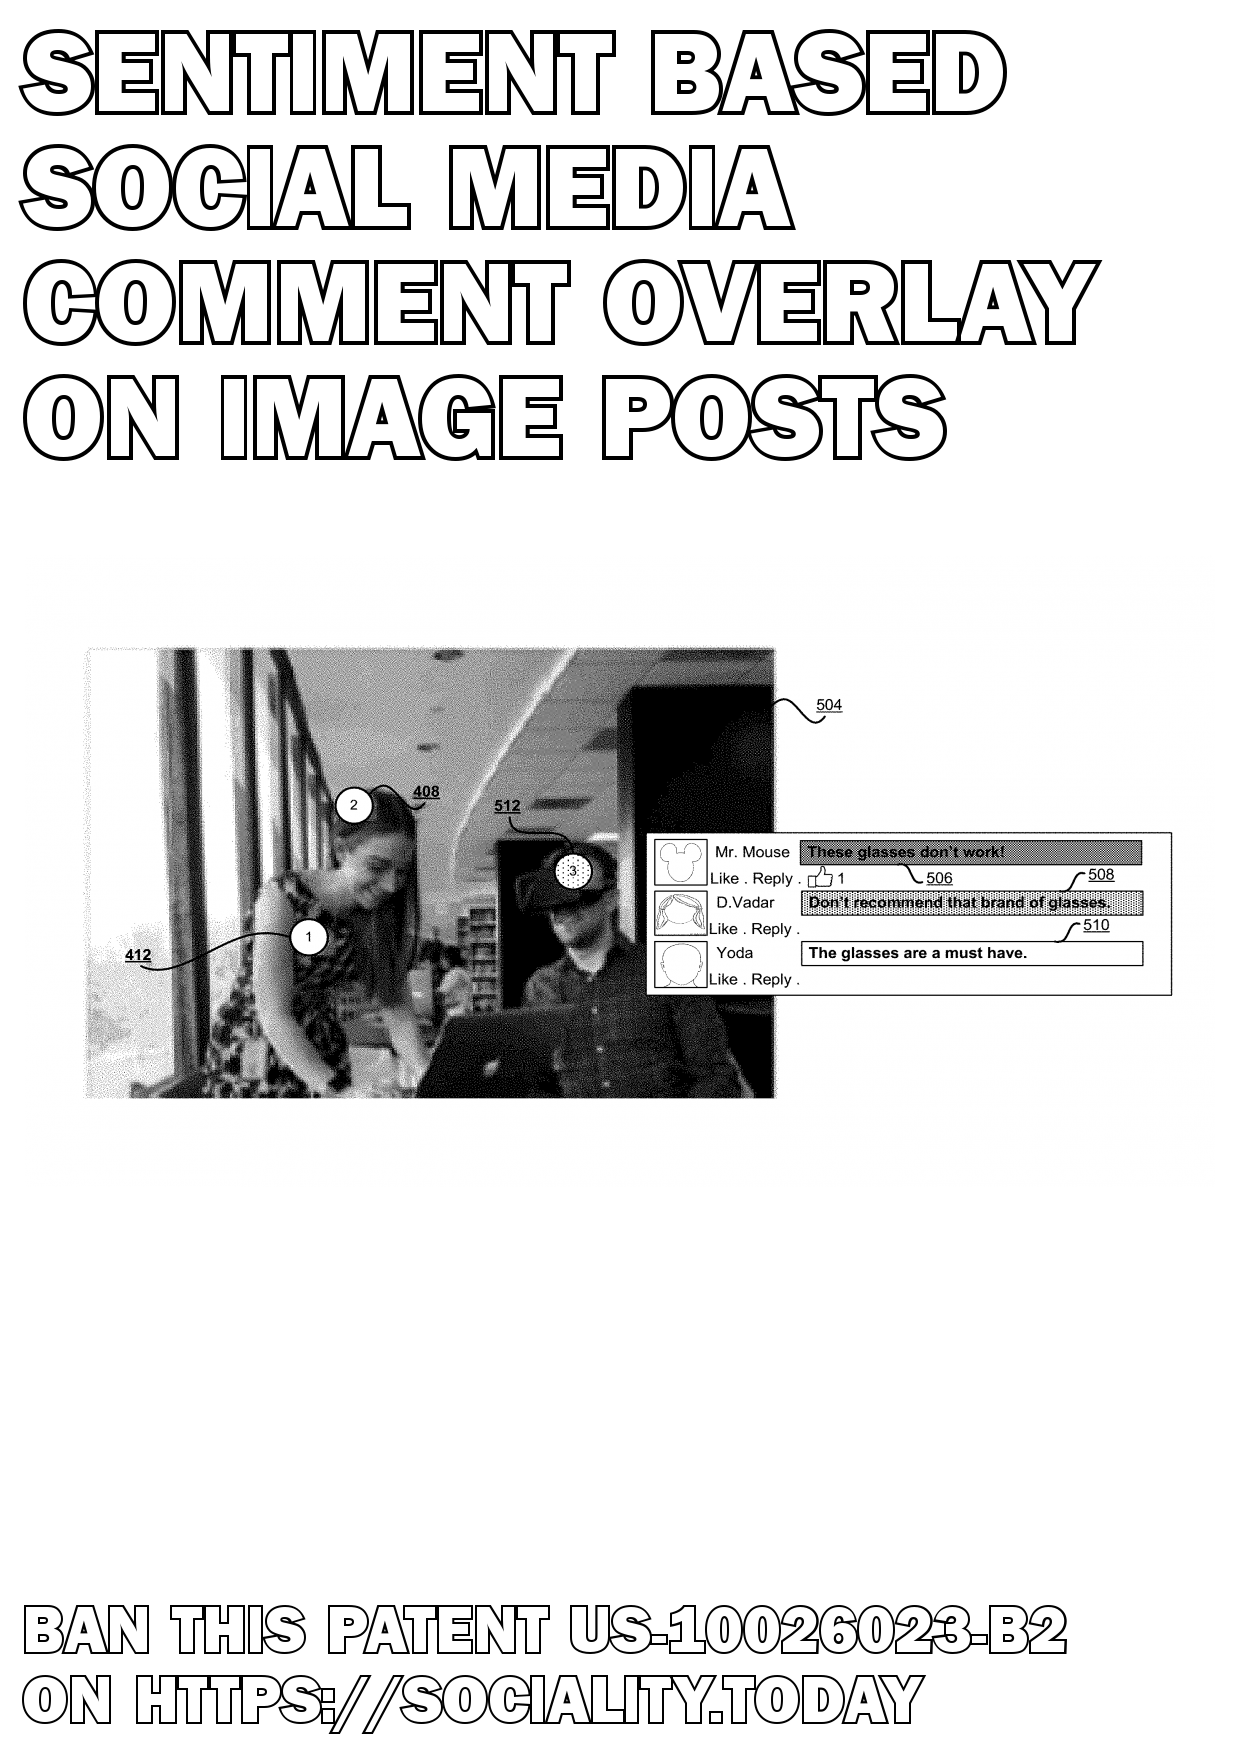 Sentiment based social media comment overlay on image posts  - US-10026023-B2